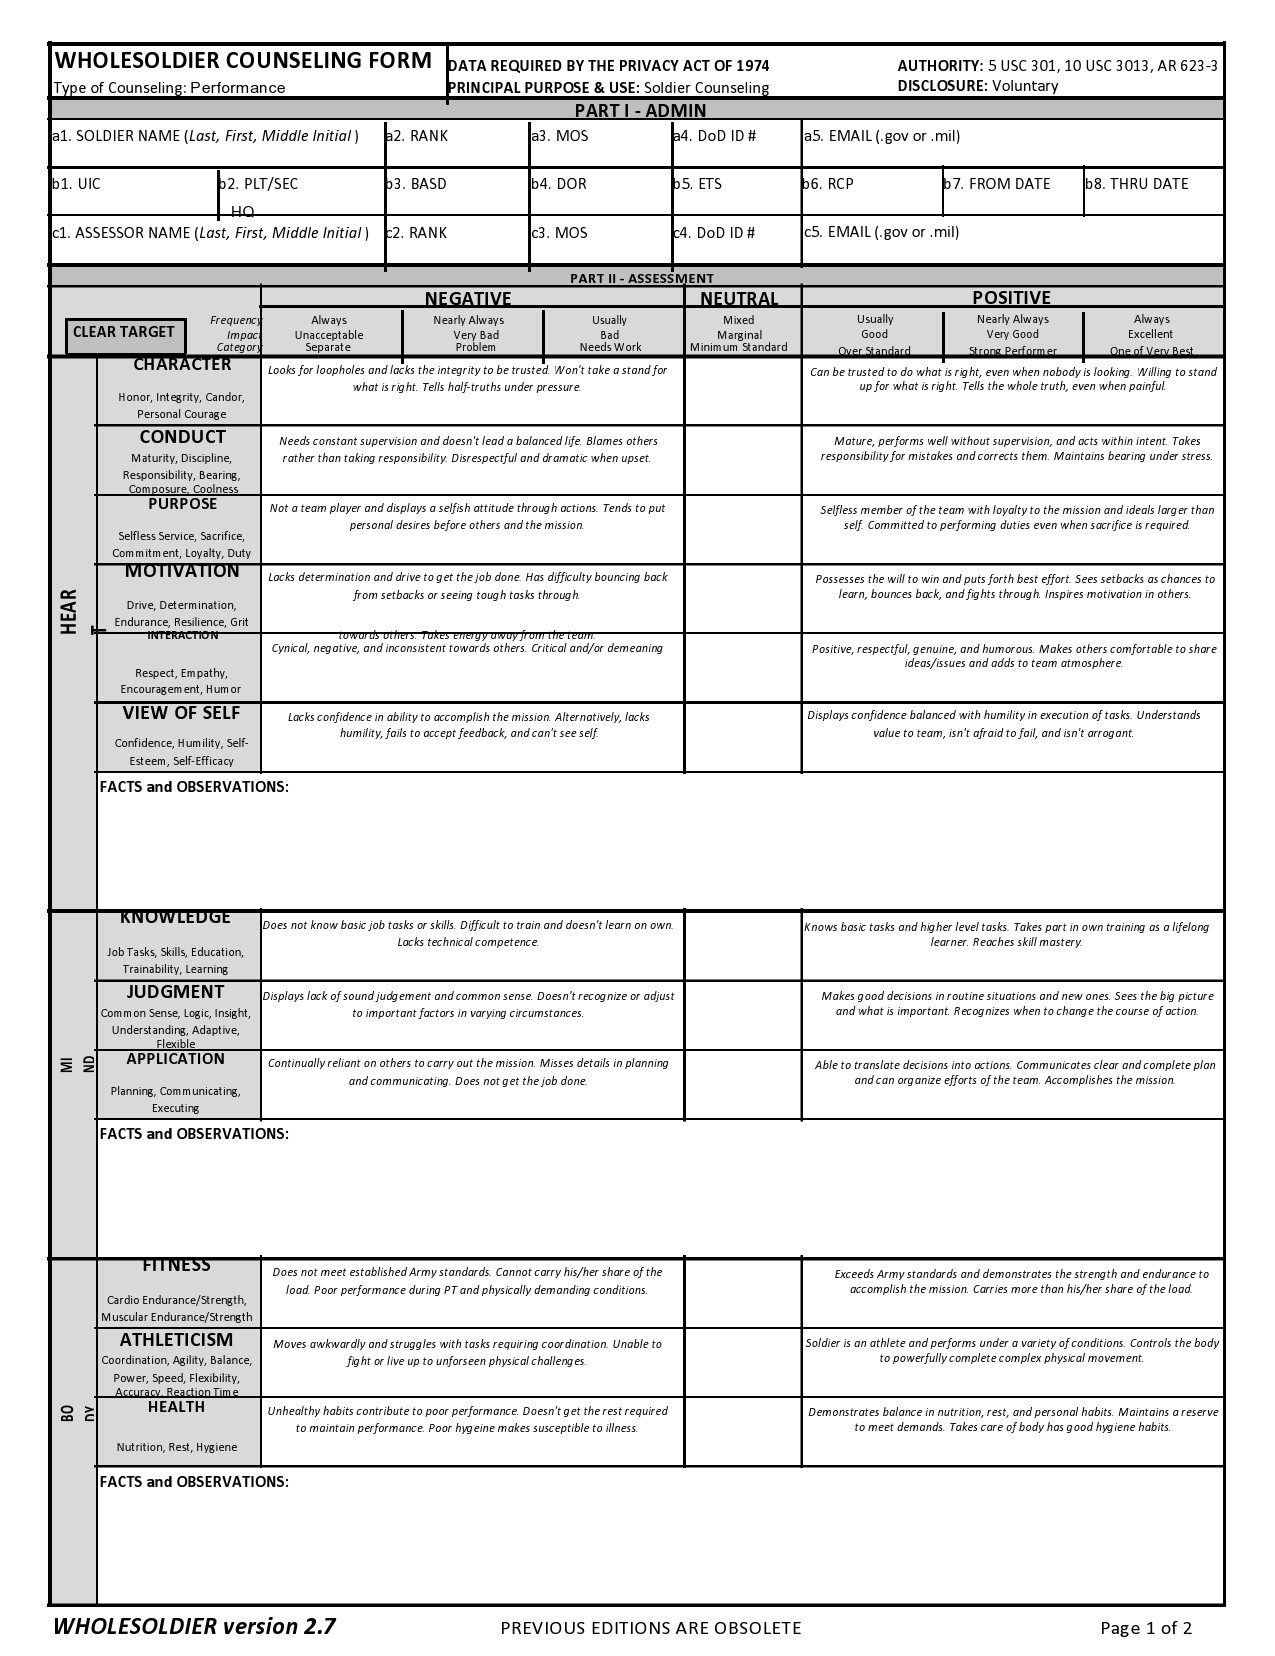 Free army counseling form 31